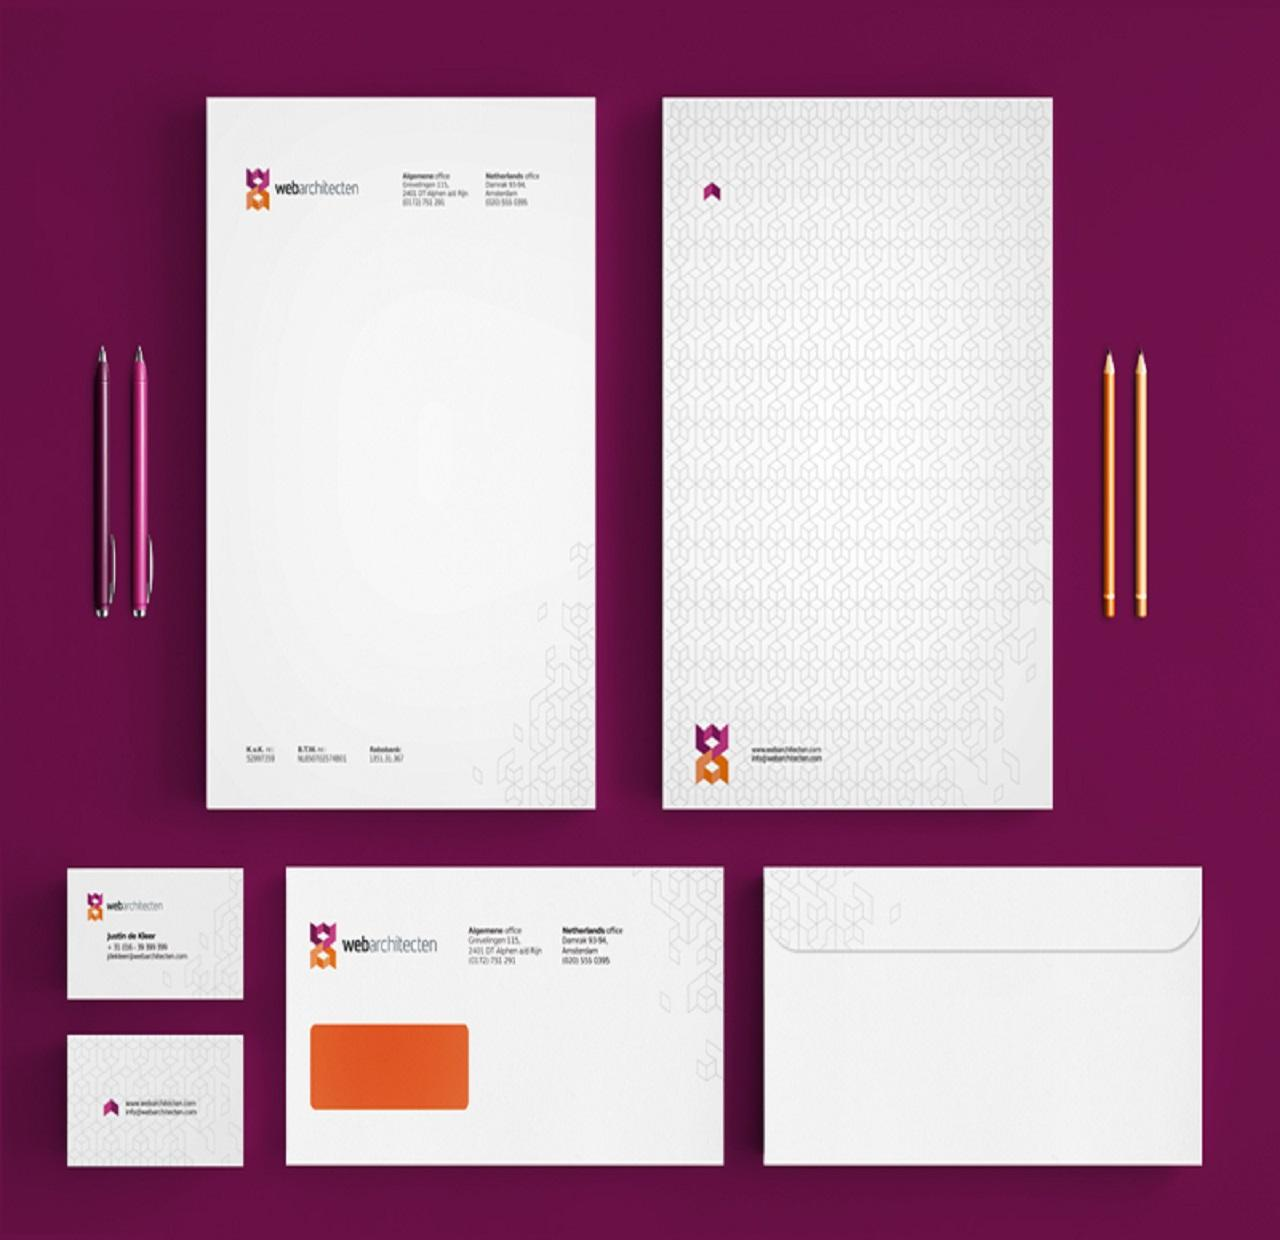 Highly Professional Stationery Design by Devrajsinh - 96454